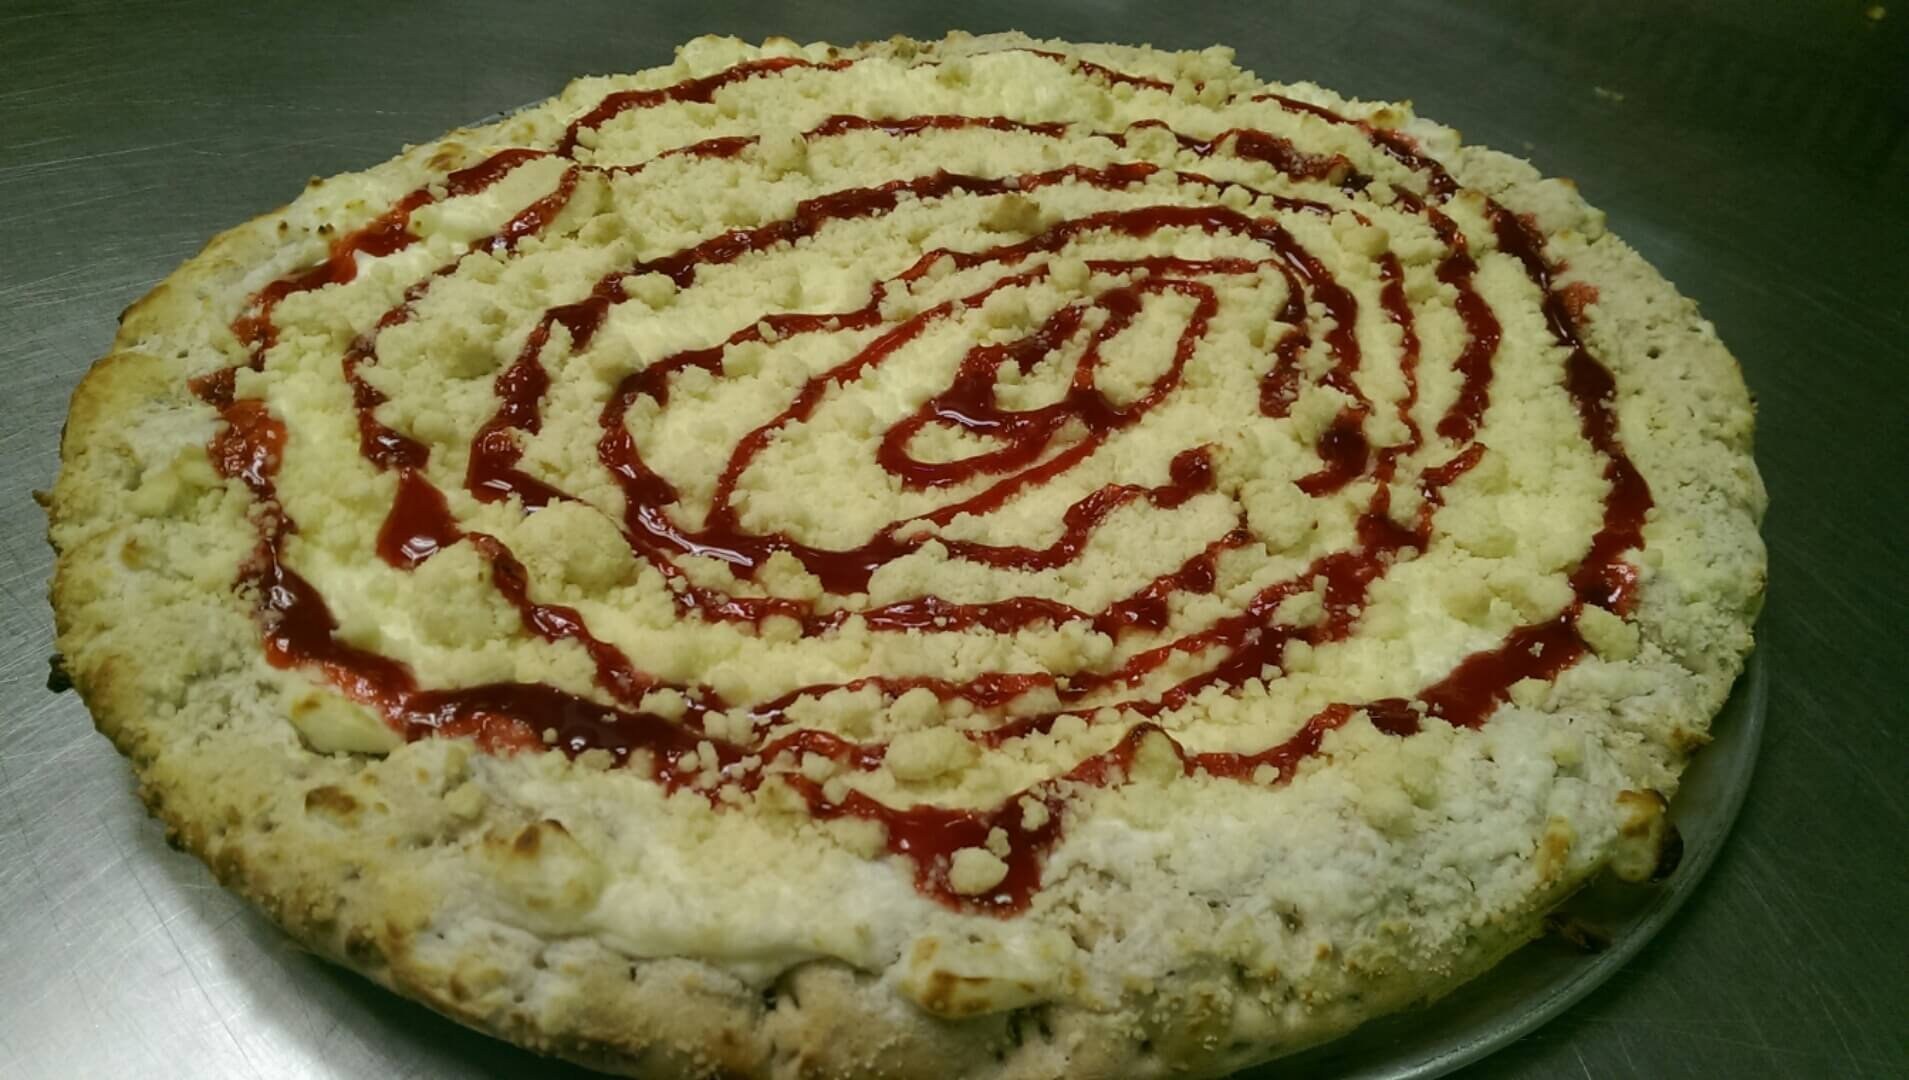 Boss' Pizza & Chicken - Raspberry Cheesecake Pizza